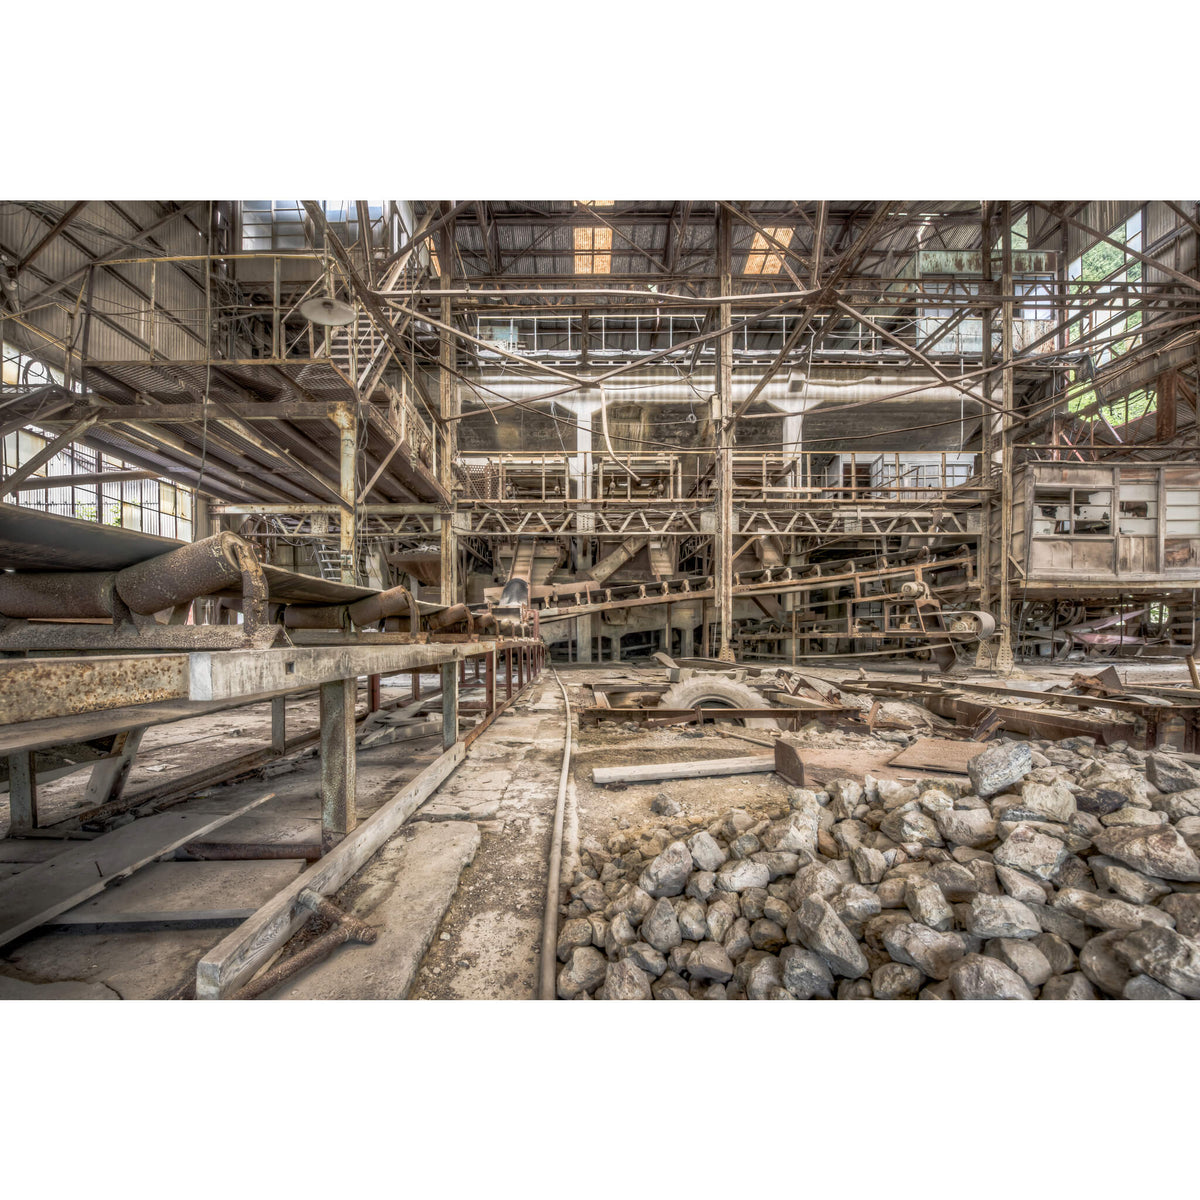 Raw Material Conveyors | Ashio Copper Mine Fine Art Print - Lost Collective Shop